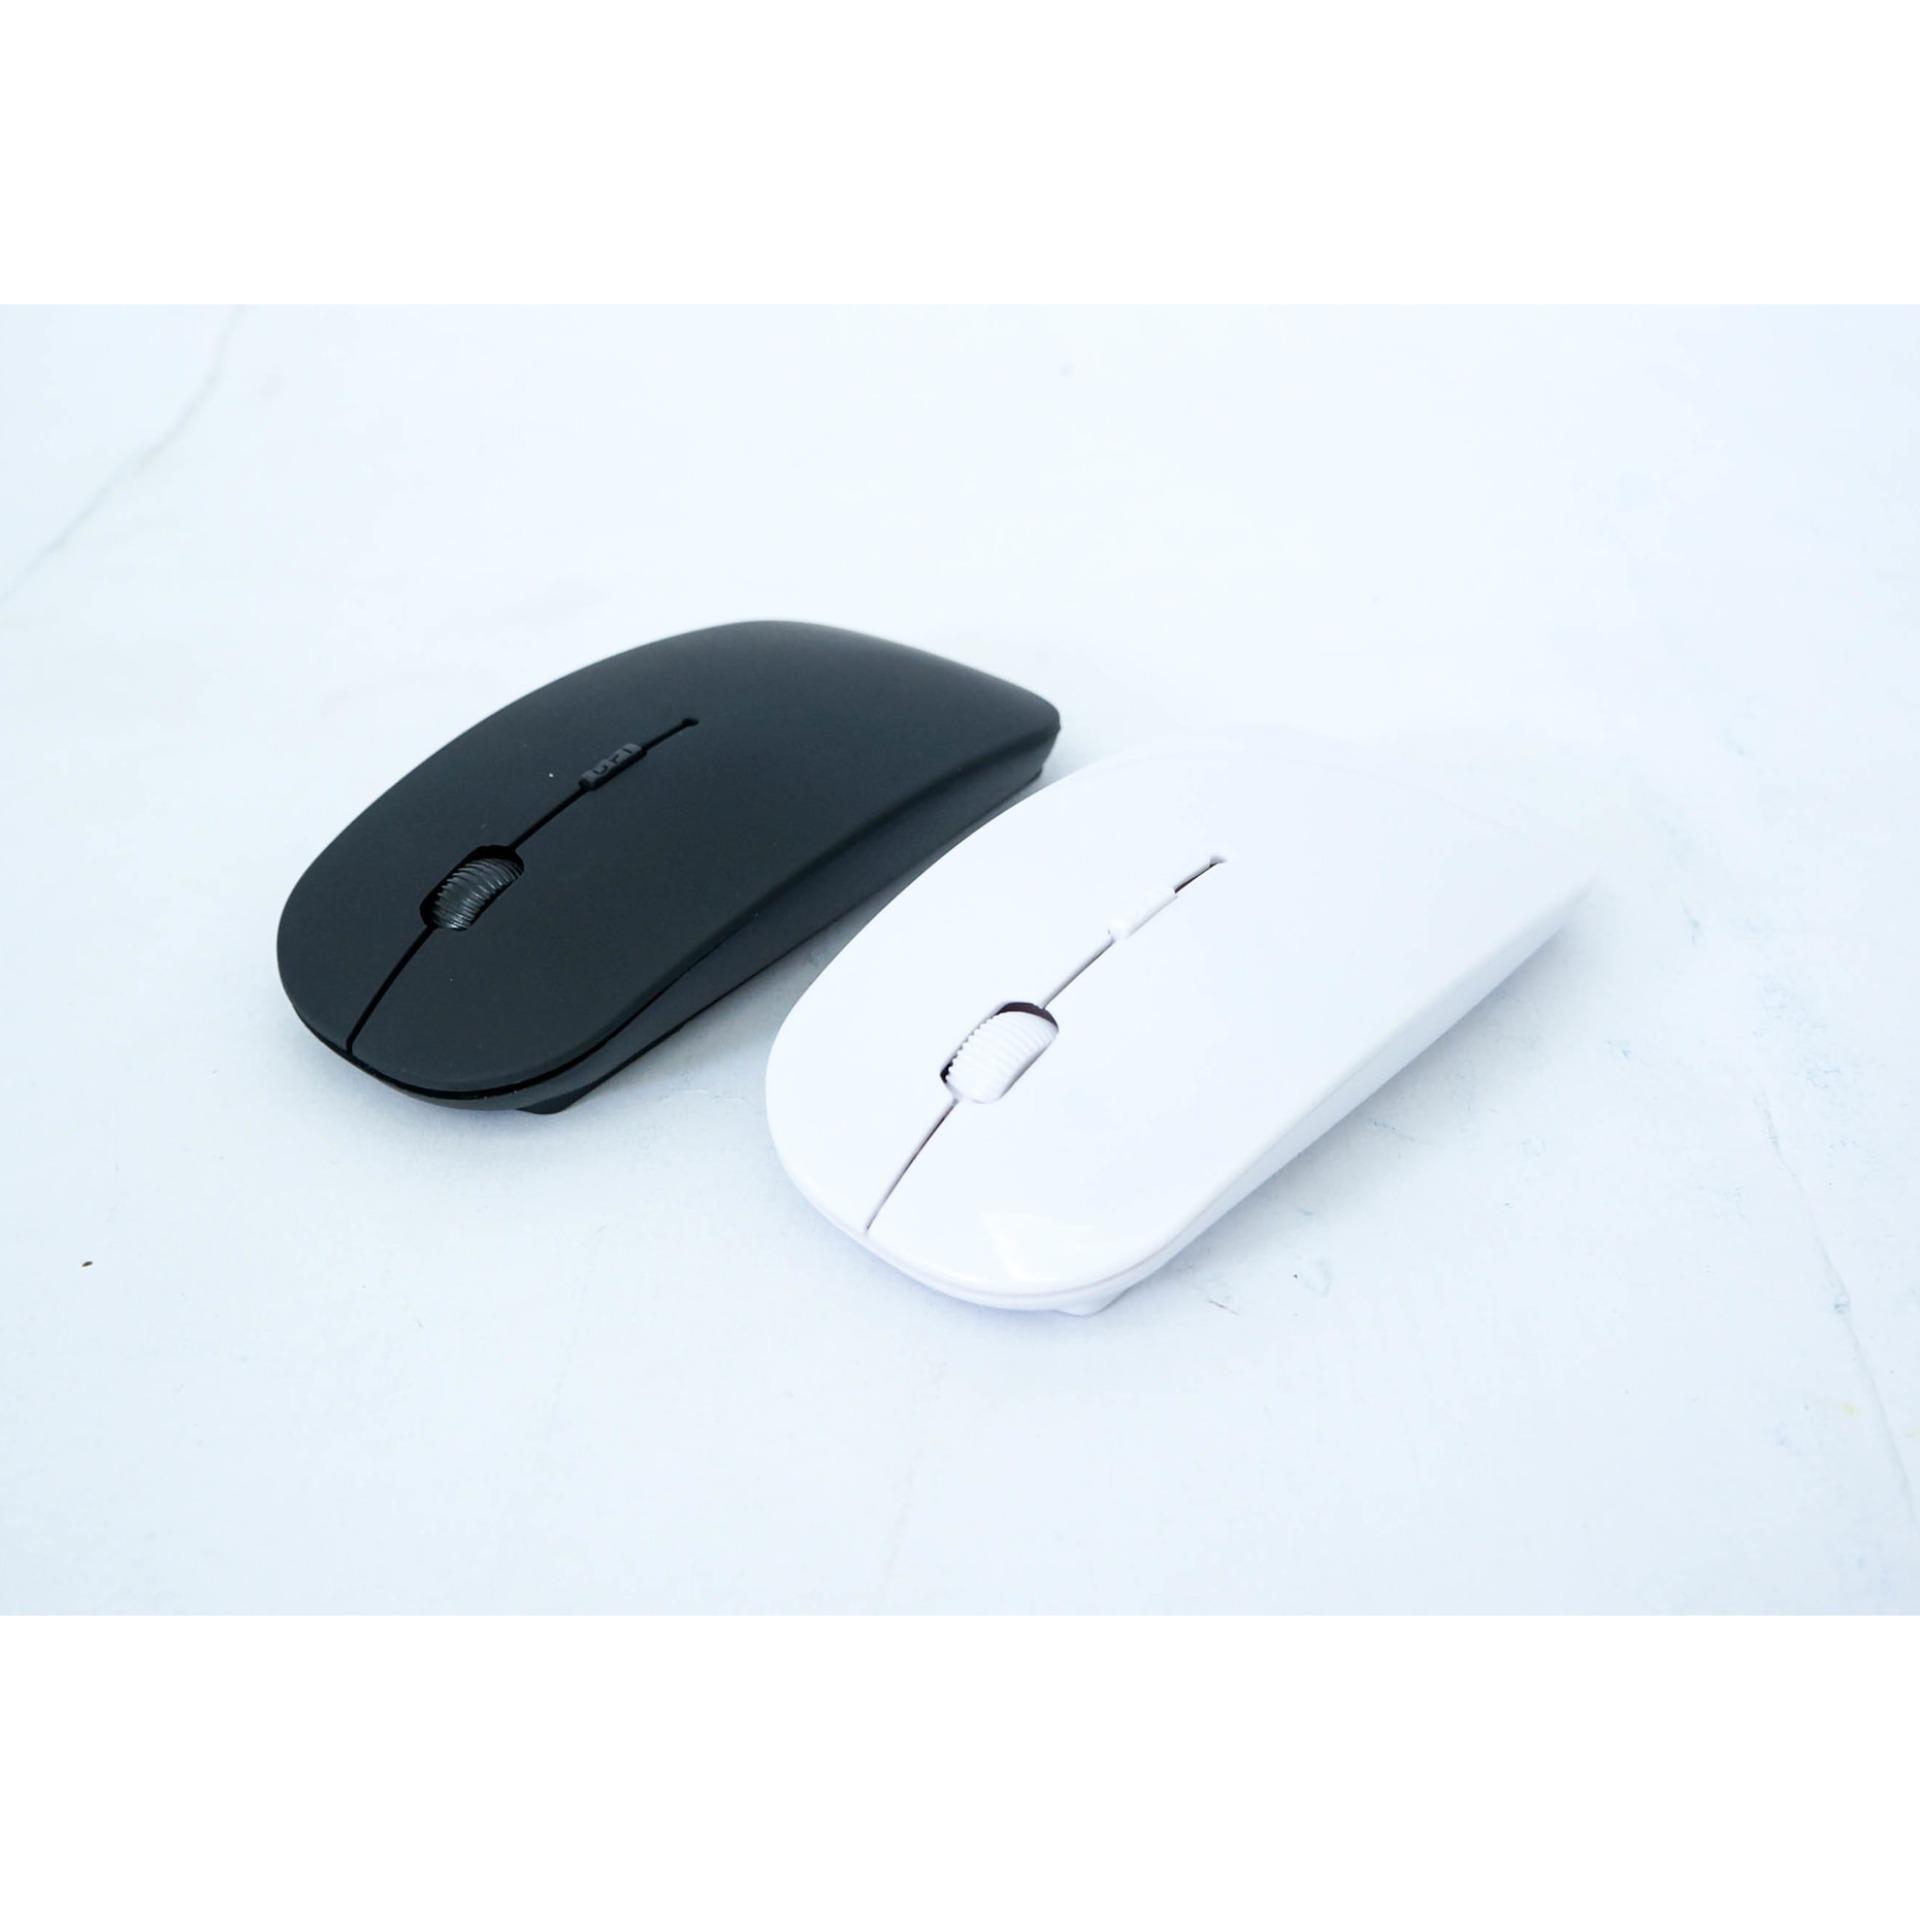 Toko Mouse Wireless Super Slim With Usb Receiver 2 4Ghz For Laptop Notebook Indonesia